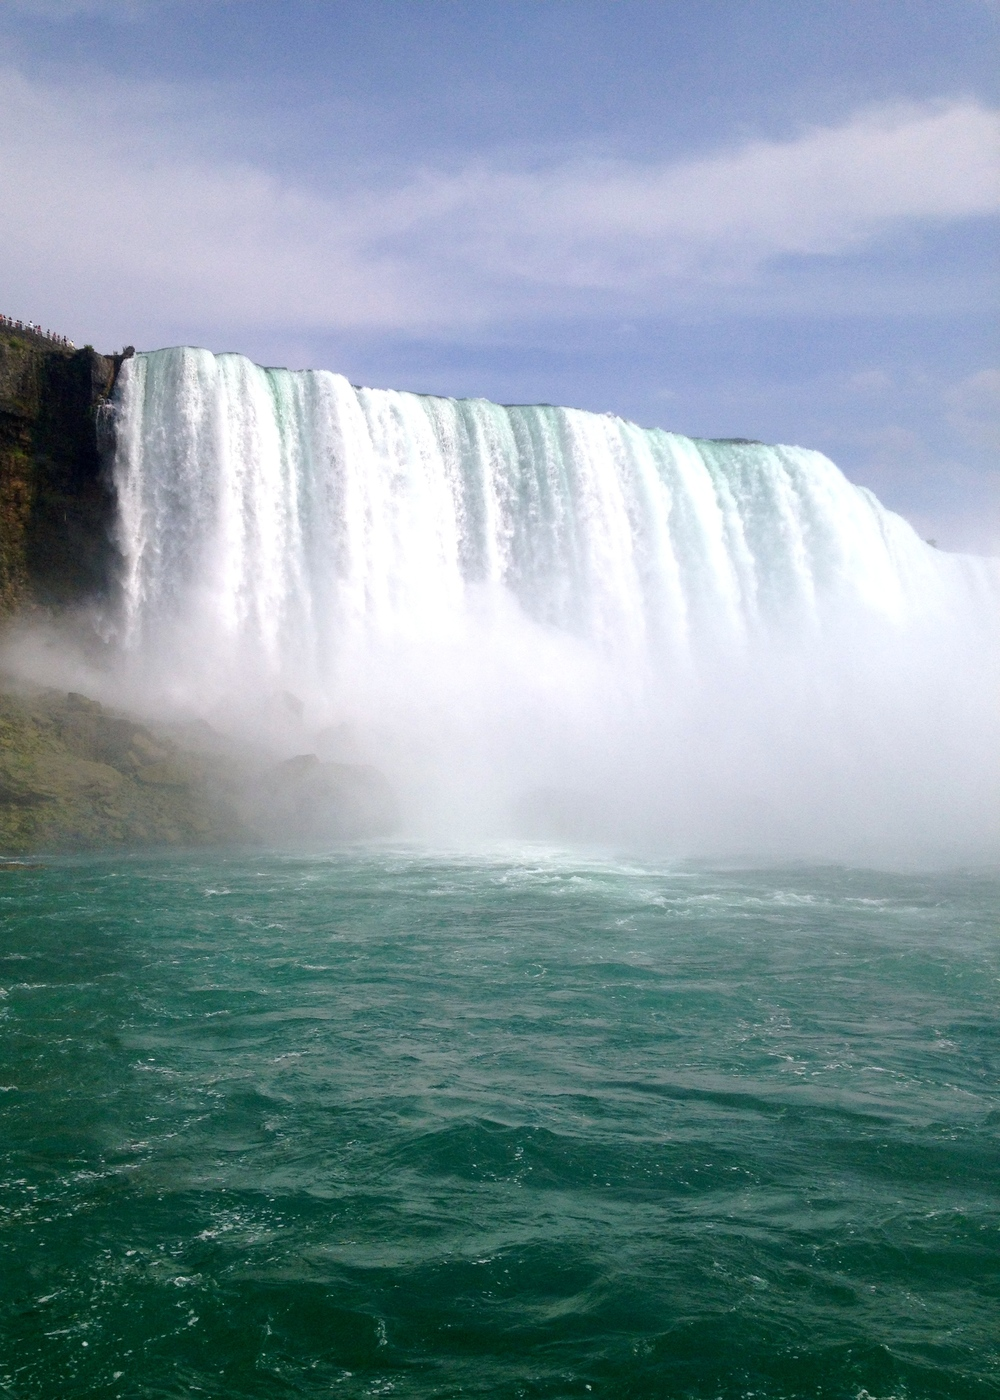 Niagara Falls from the boat.